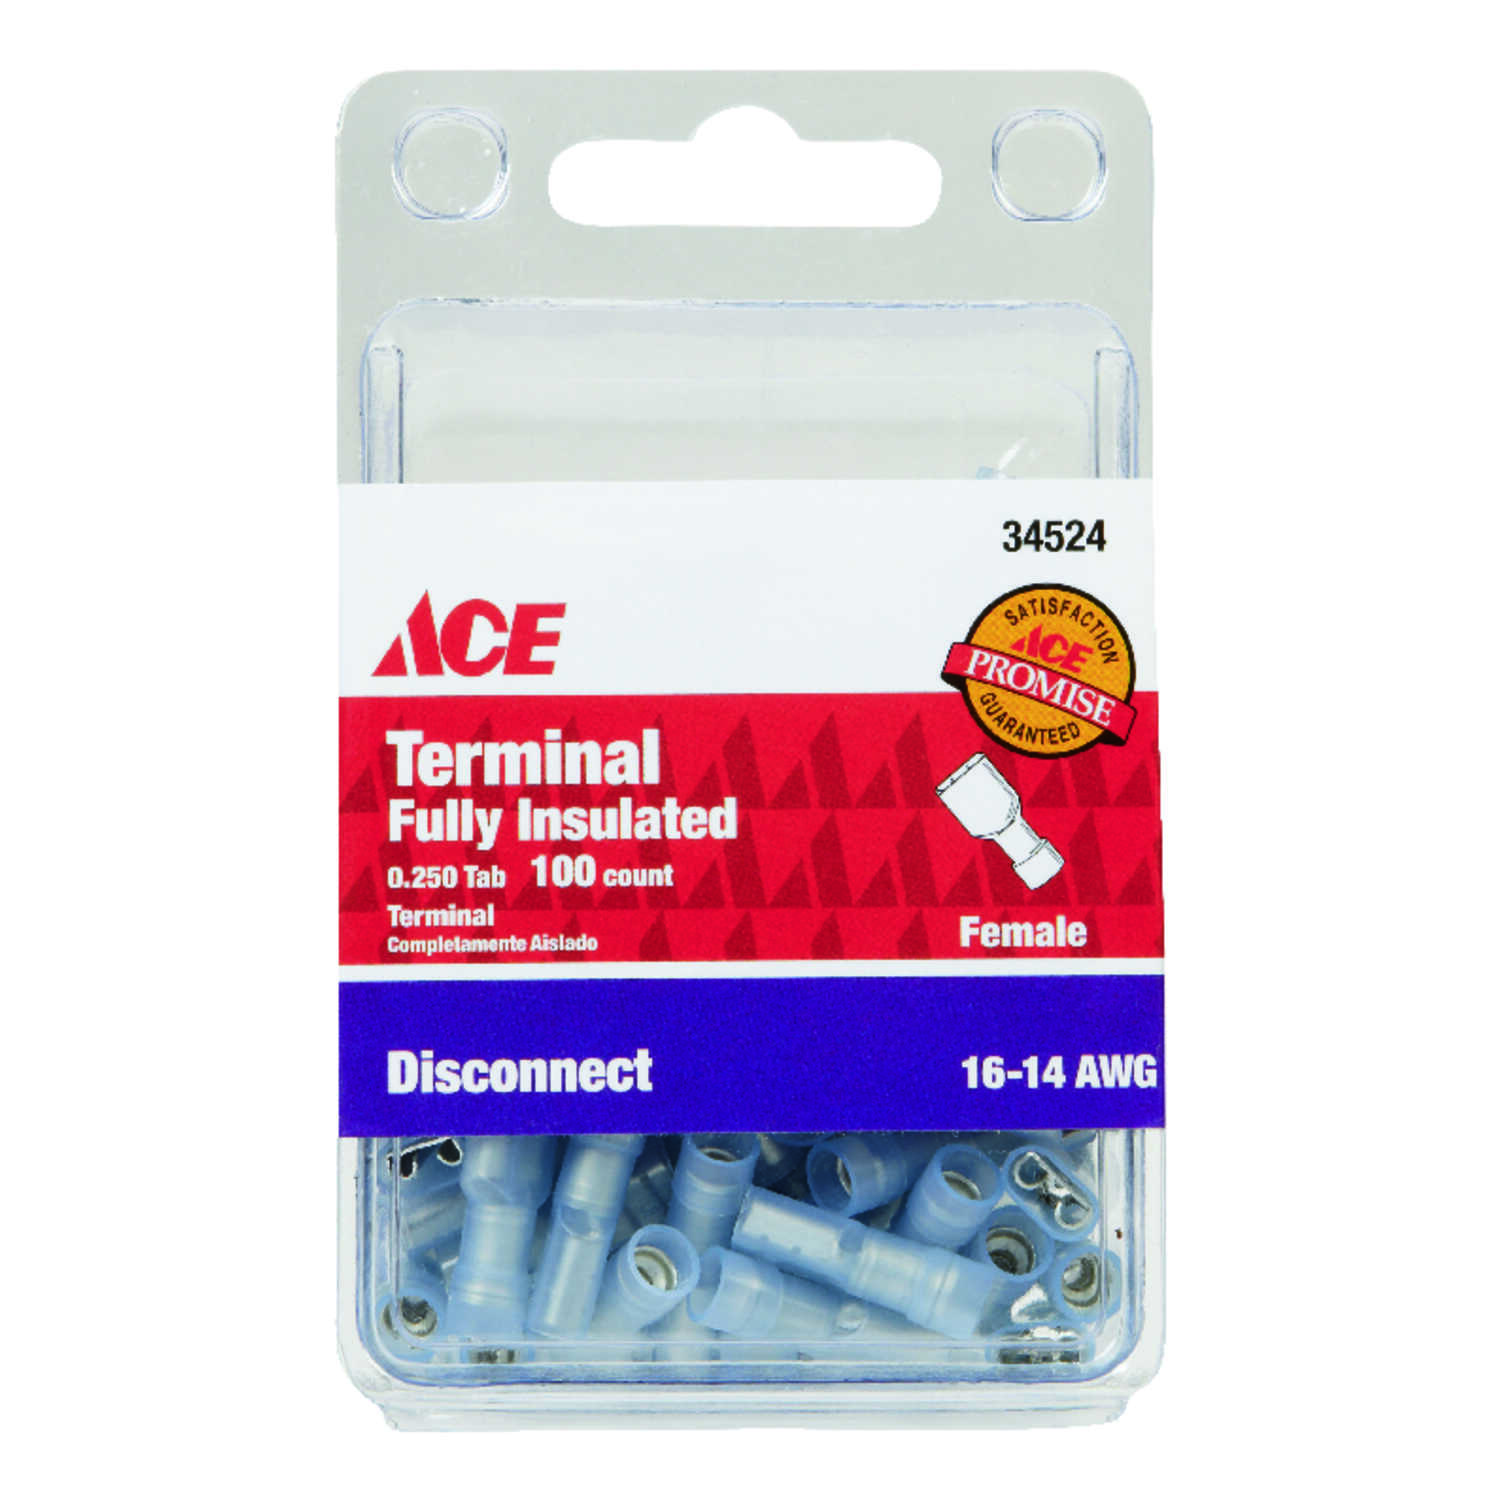 Ace Insulated Wire Female Disconnect 100 pk - Ace Hardware